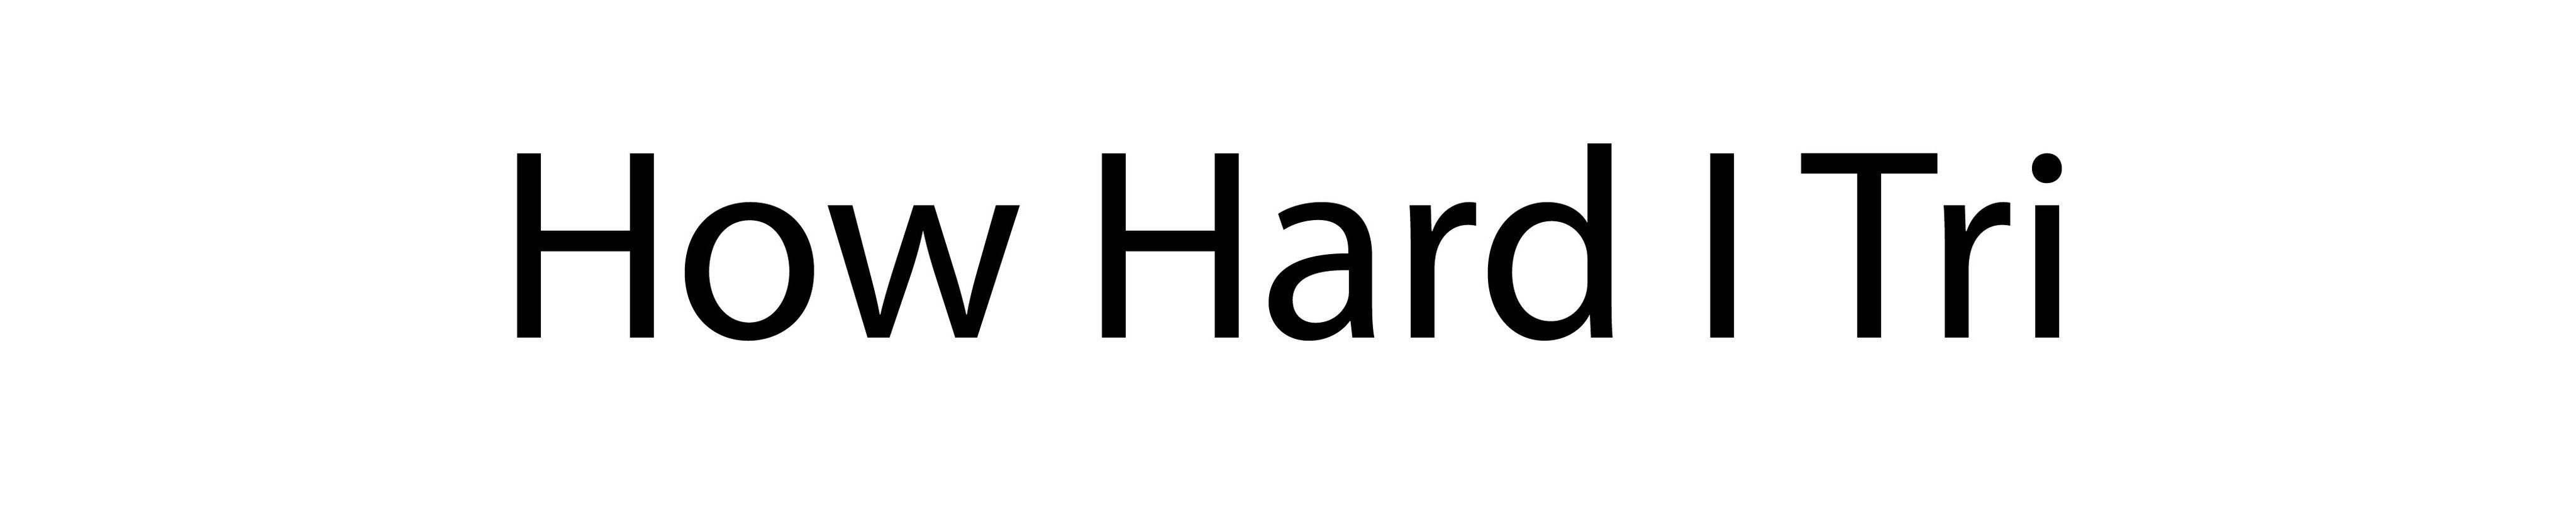 How Hard I Tri Logo